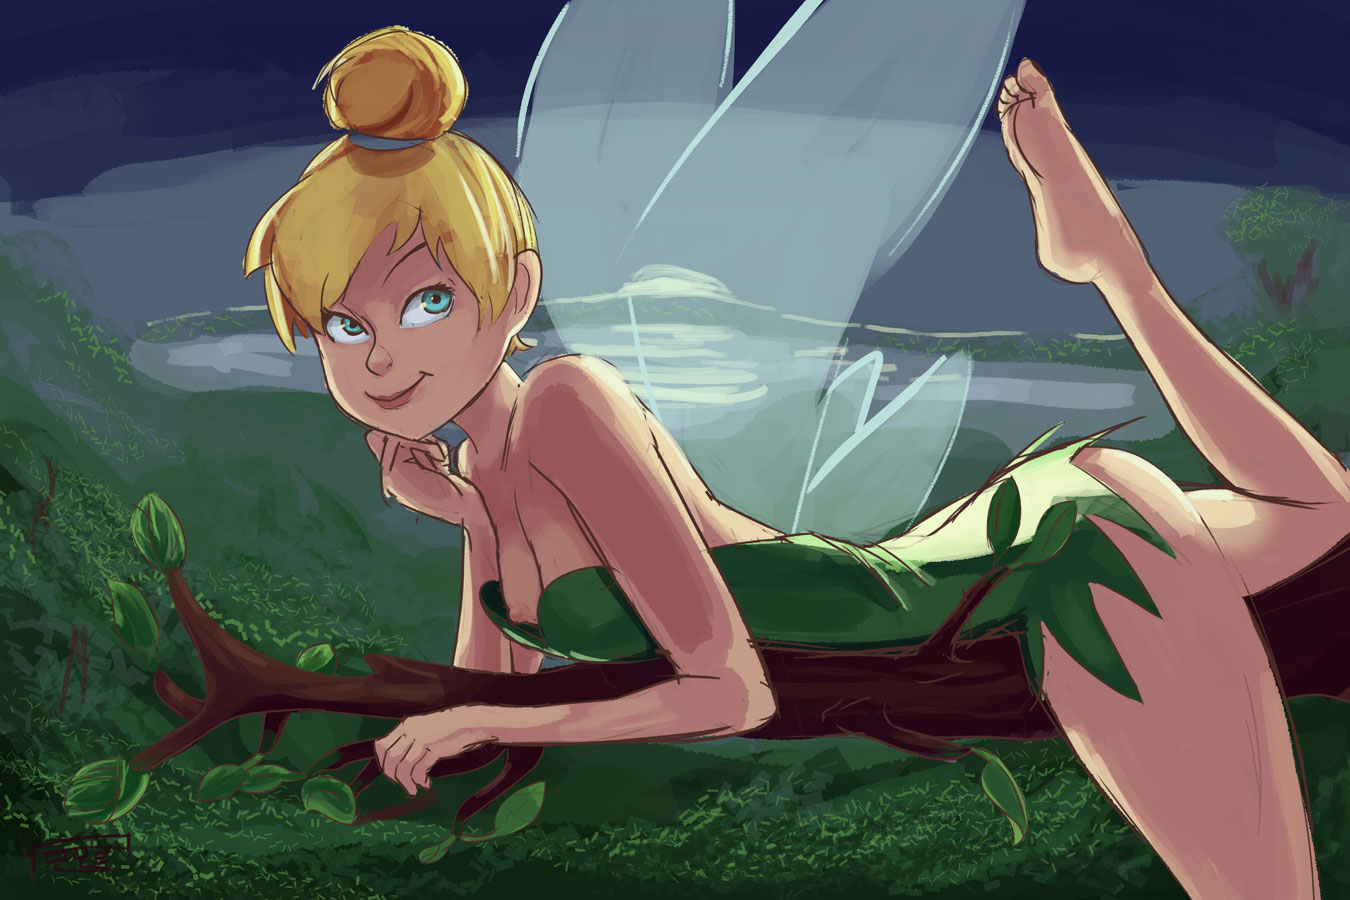 Top 10 tinker bell porno games porncraft tube